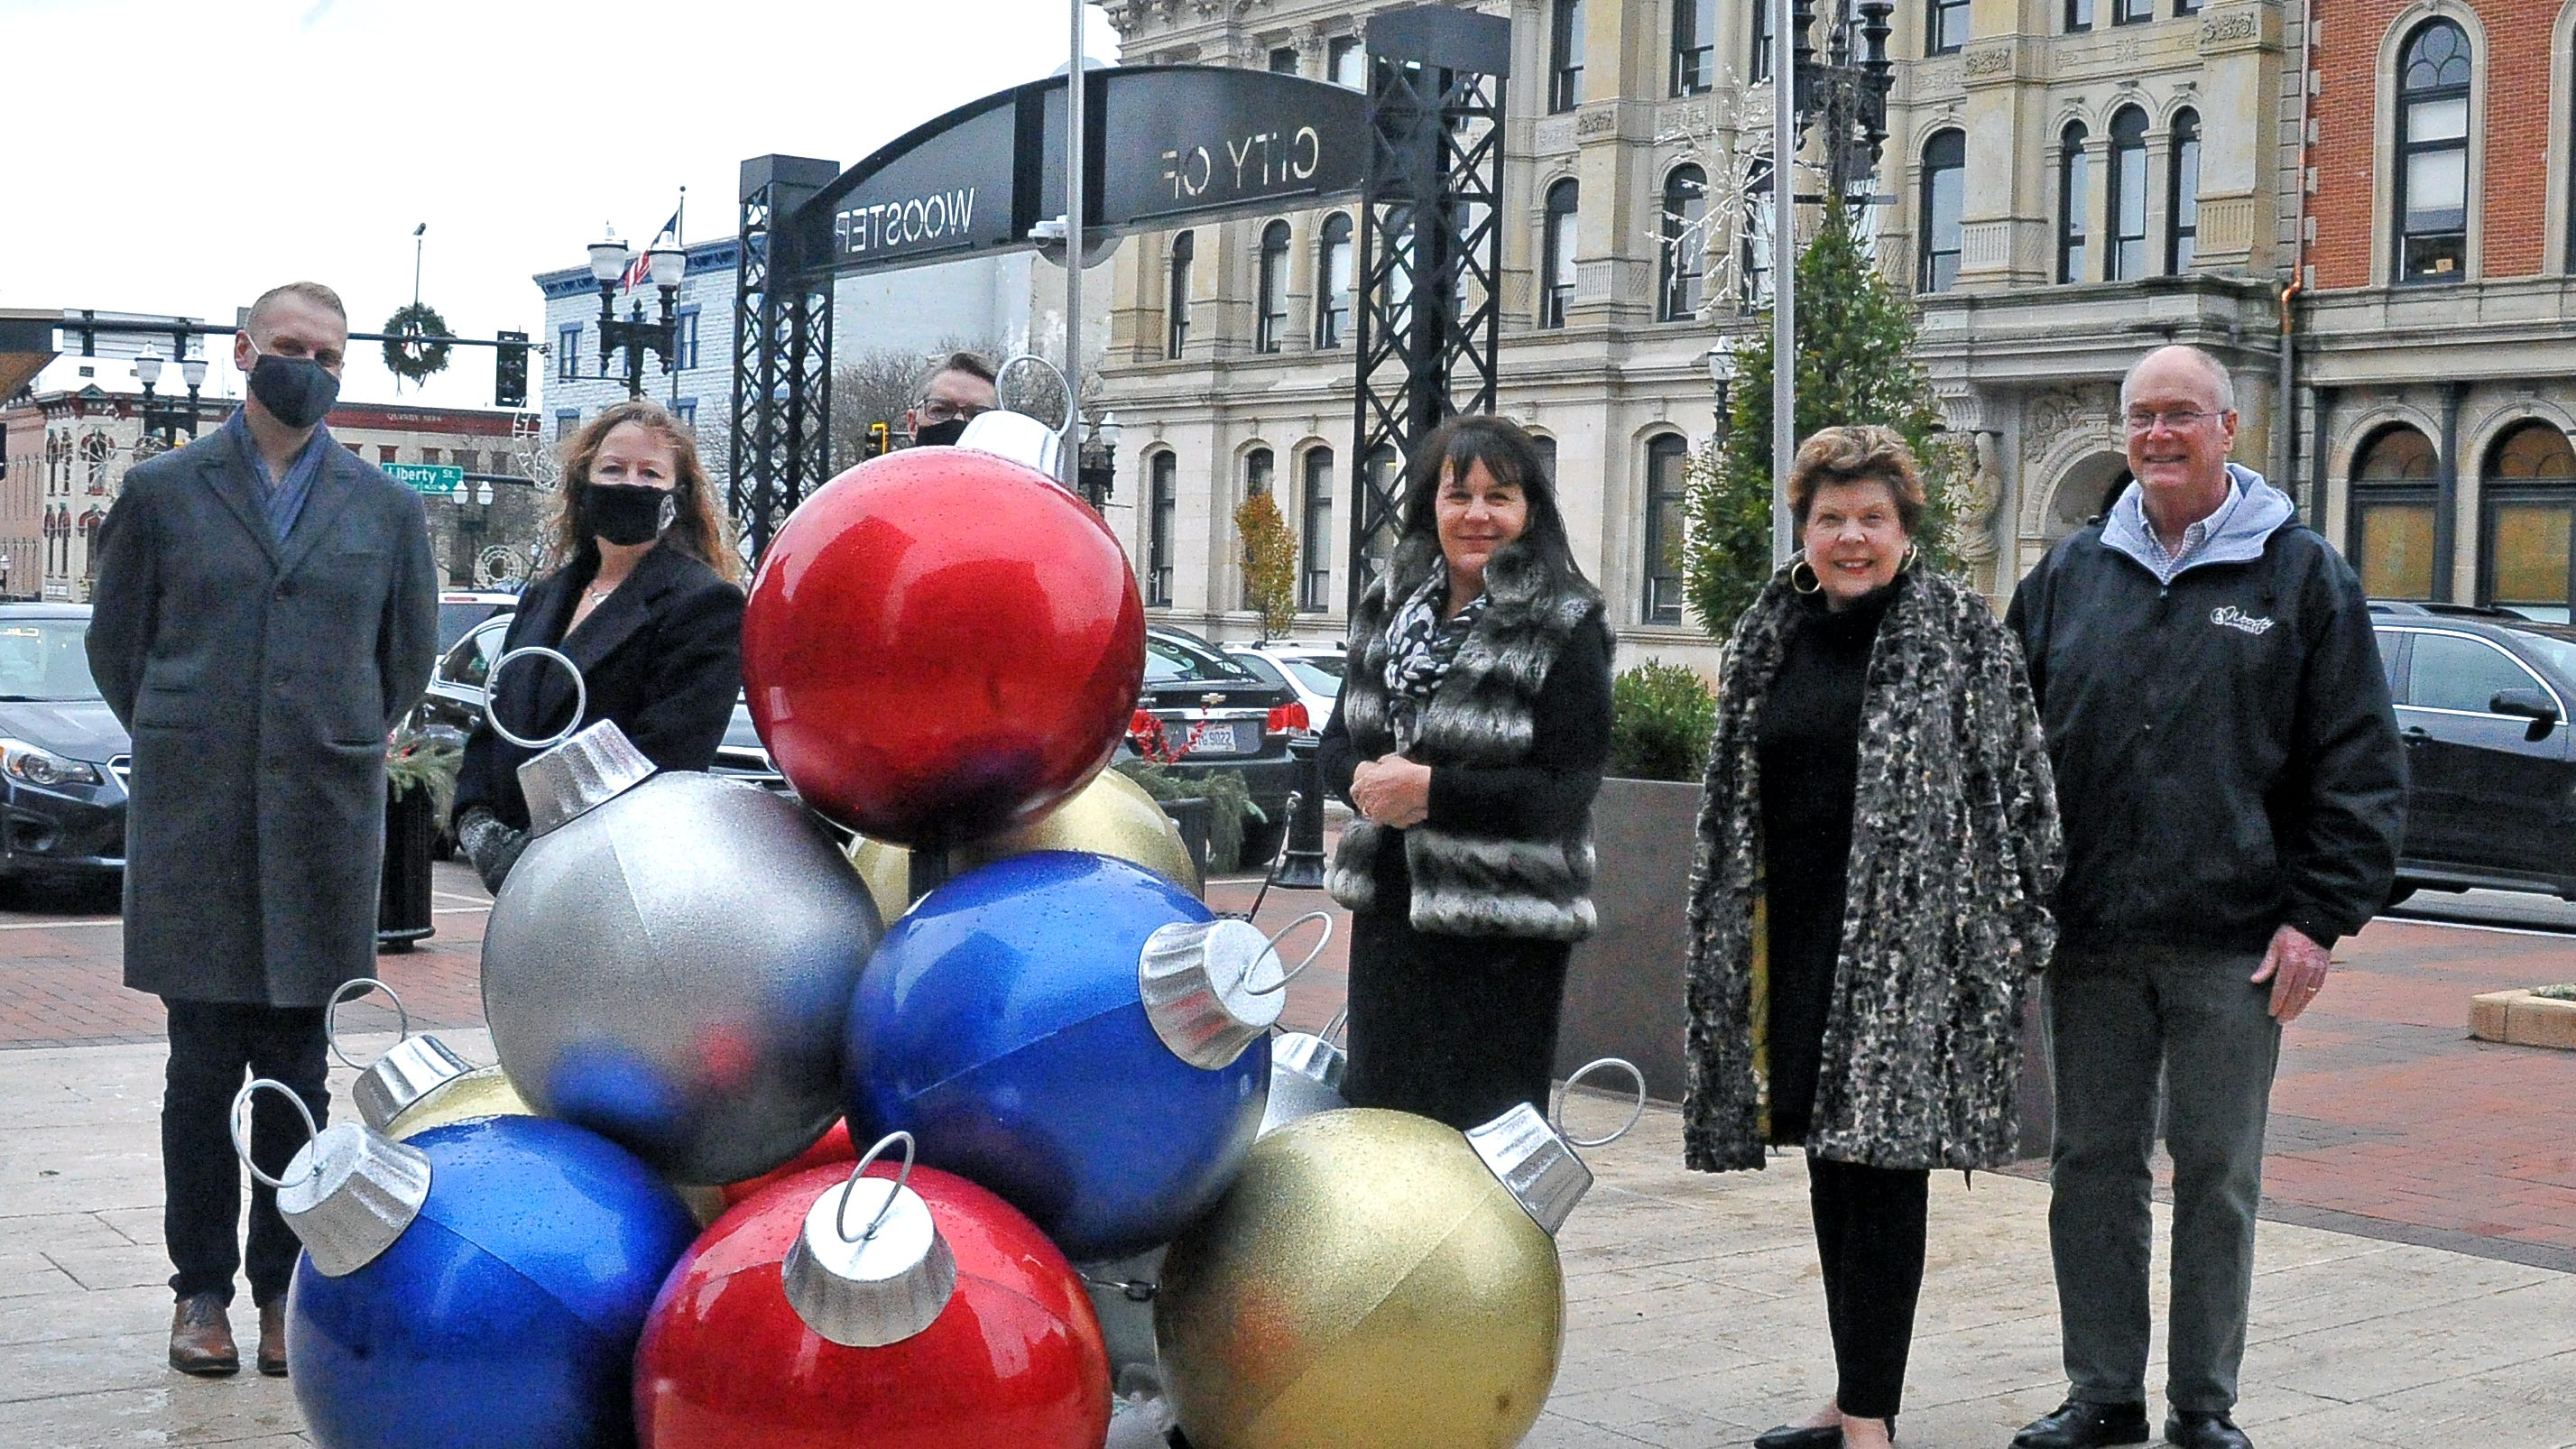 Standing by the newest holiday decoration on the square is John Benko-Scruggs, Shannon Waller, Joel Montgomery, Sue Williams, Sandra Hull and Wooster Mayor Bob Breneman. Waller and Benko-Scruggs worked to alter traditional events to follow coronavirus guidelines.